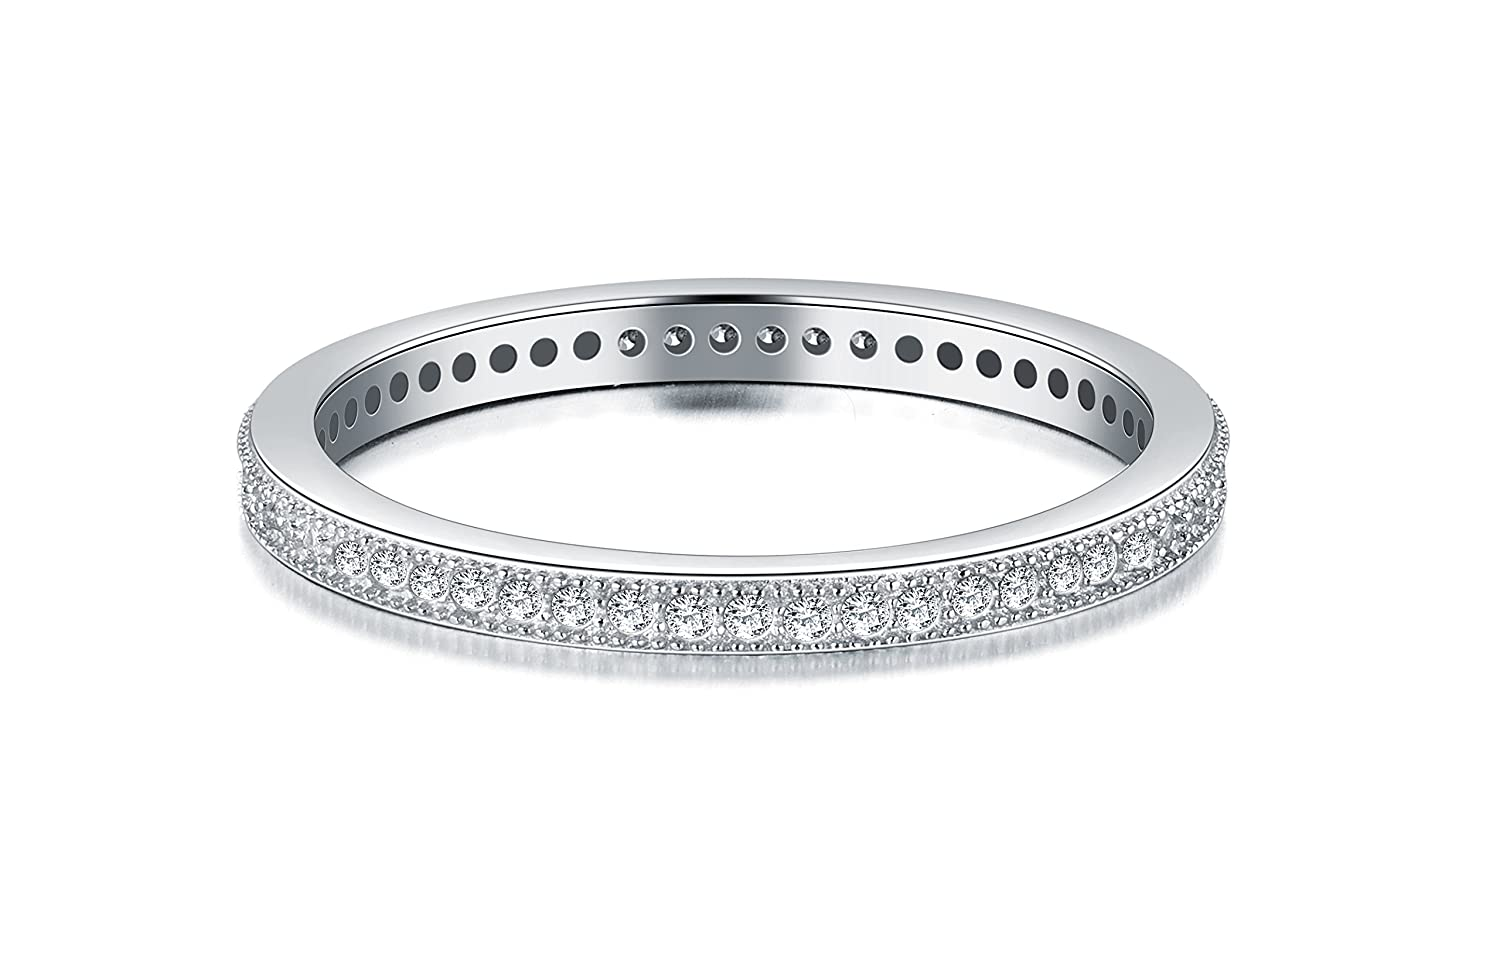 BoRuo 2MM 925 Sterling Silver Ring Cubic Zirconia CZ Wedding Band Stackable Ring Size H-Y